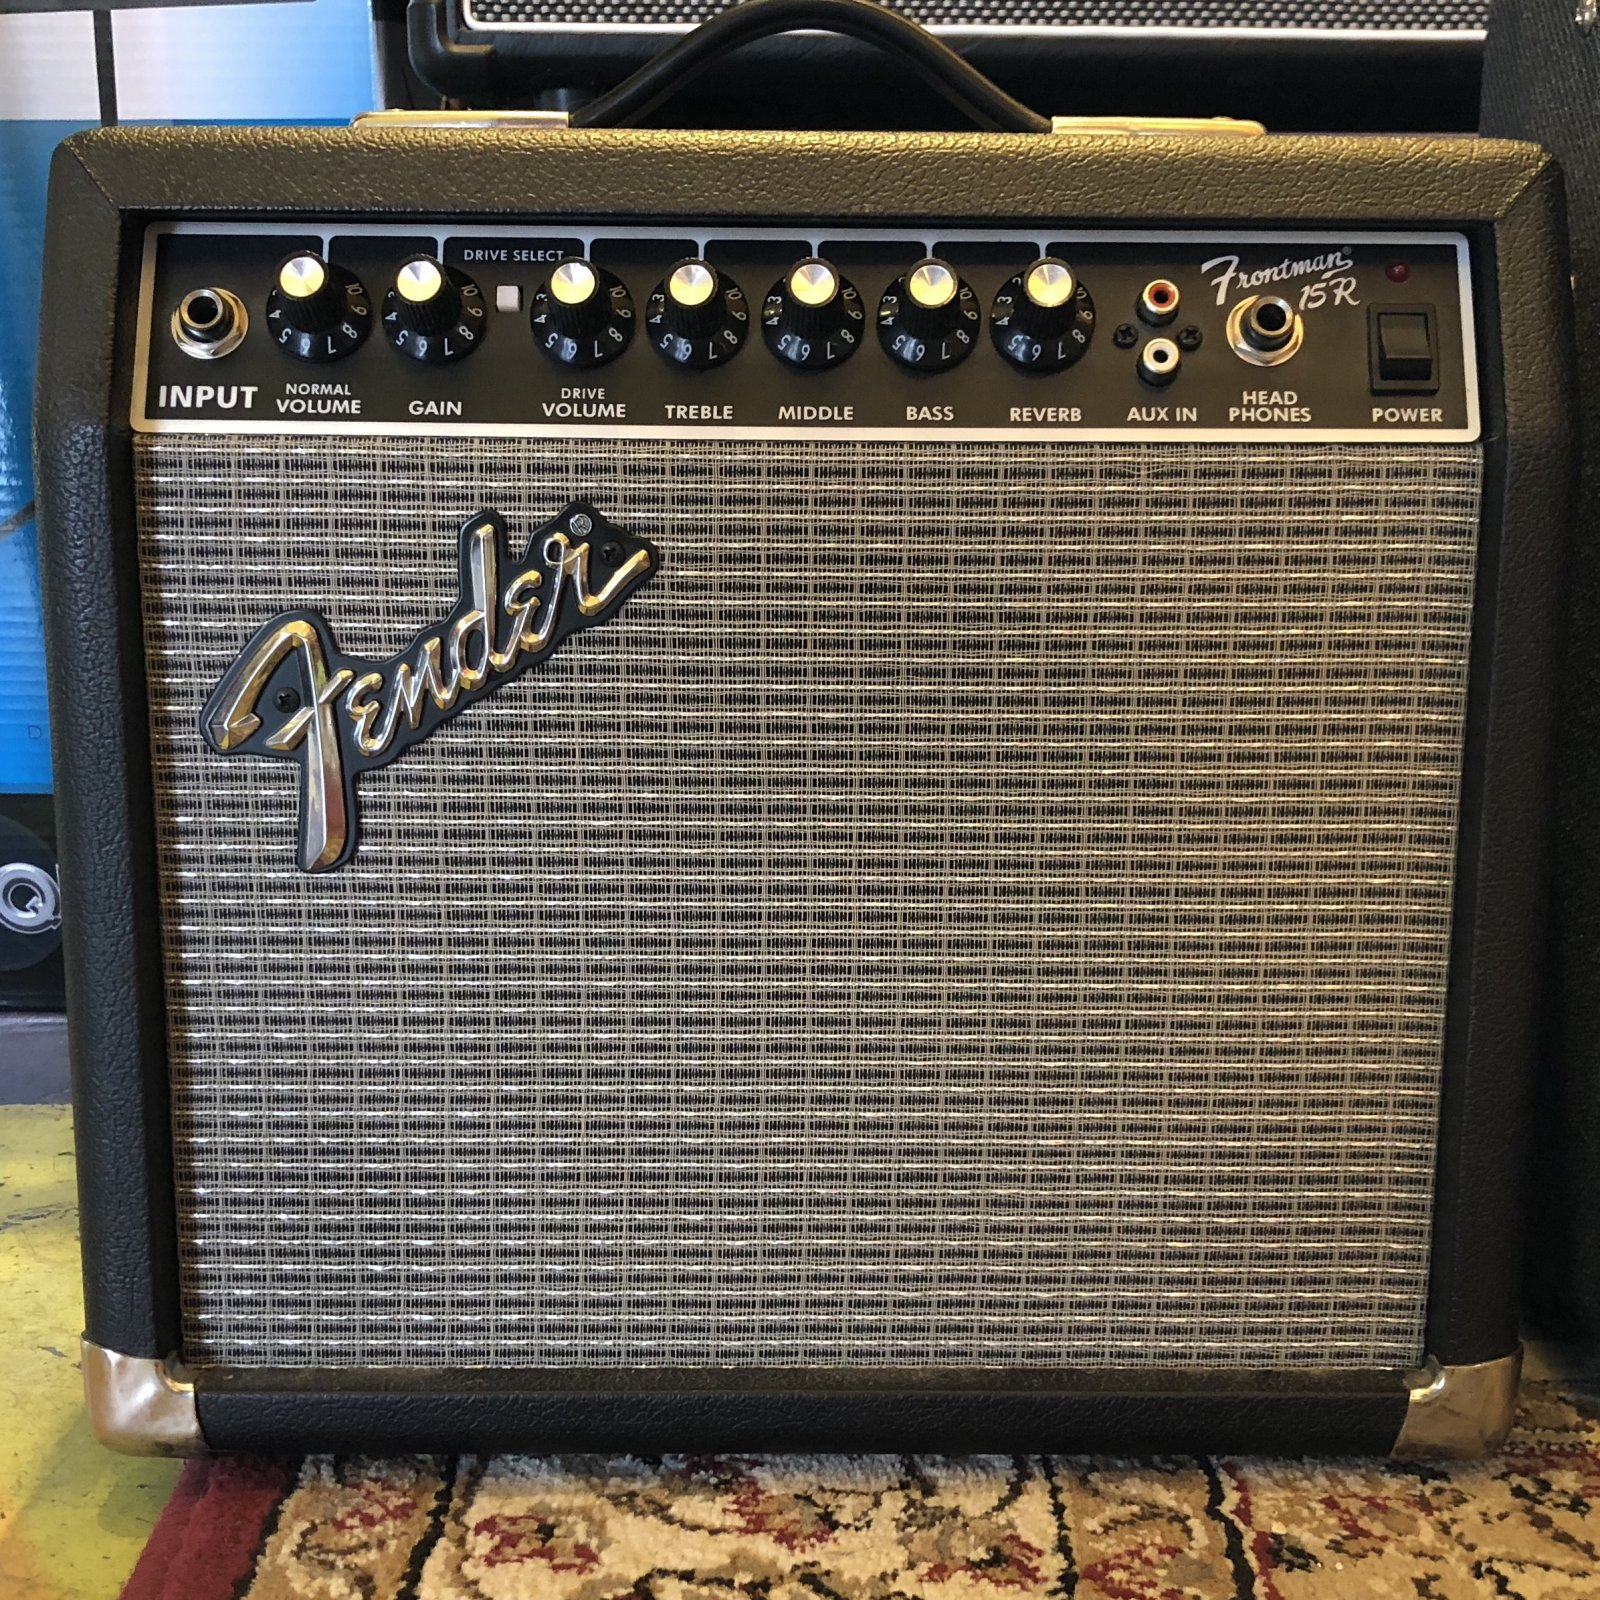 Used Fender Frontman 15r